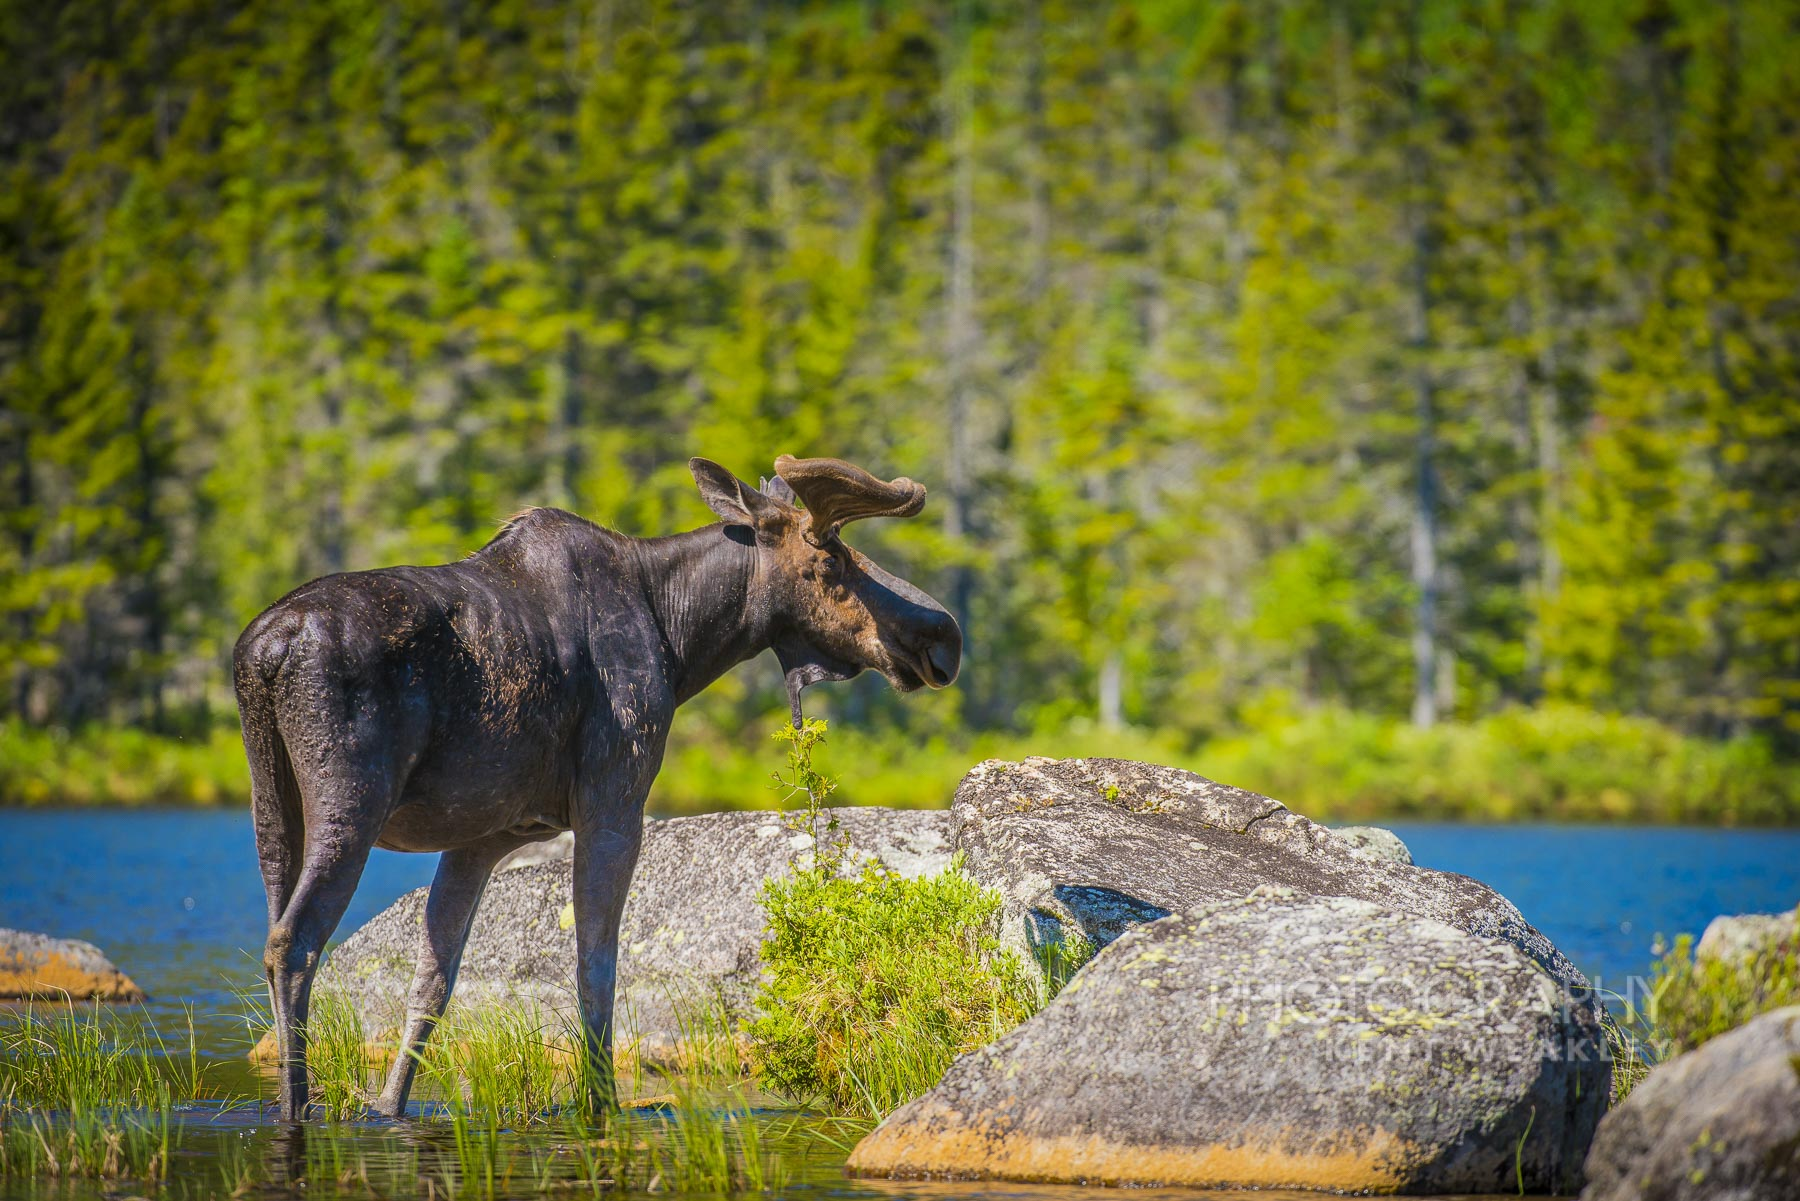 Moose_Photography_by_Kent_Weakley-87387